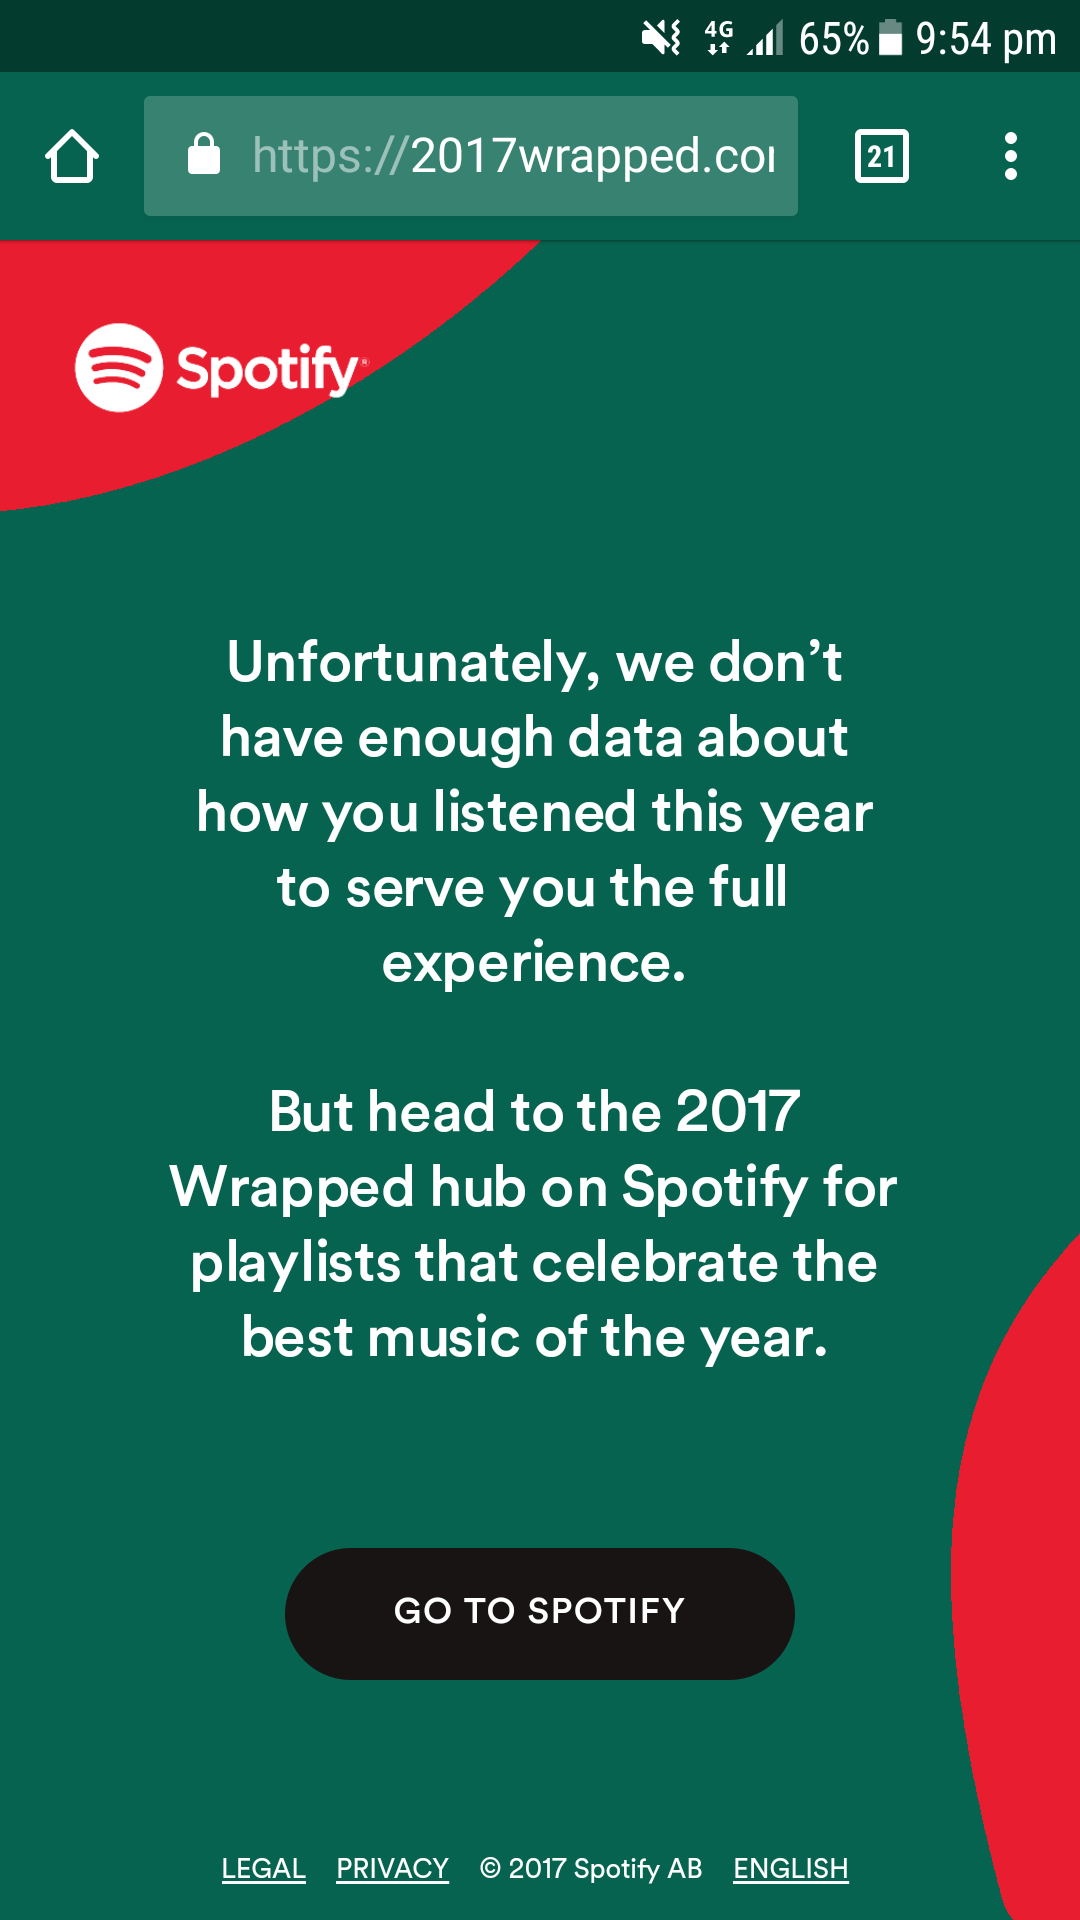 Your 2017 Wrapped.